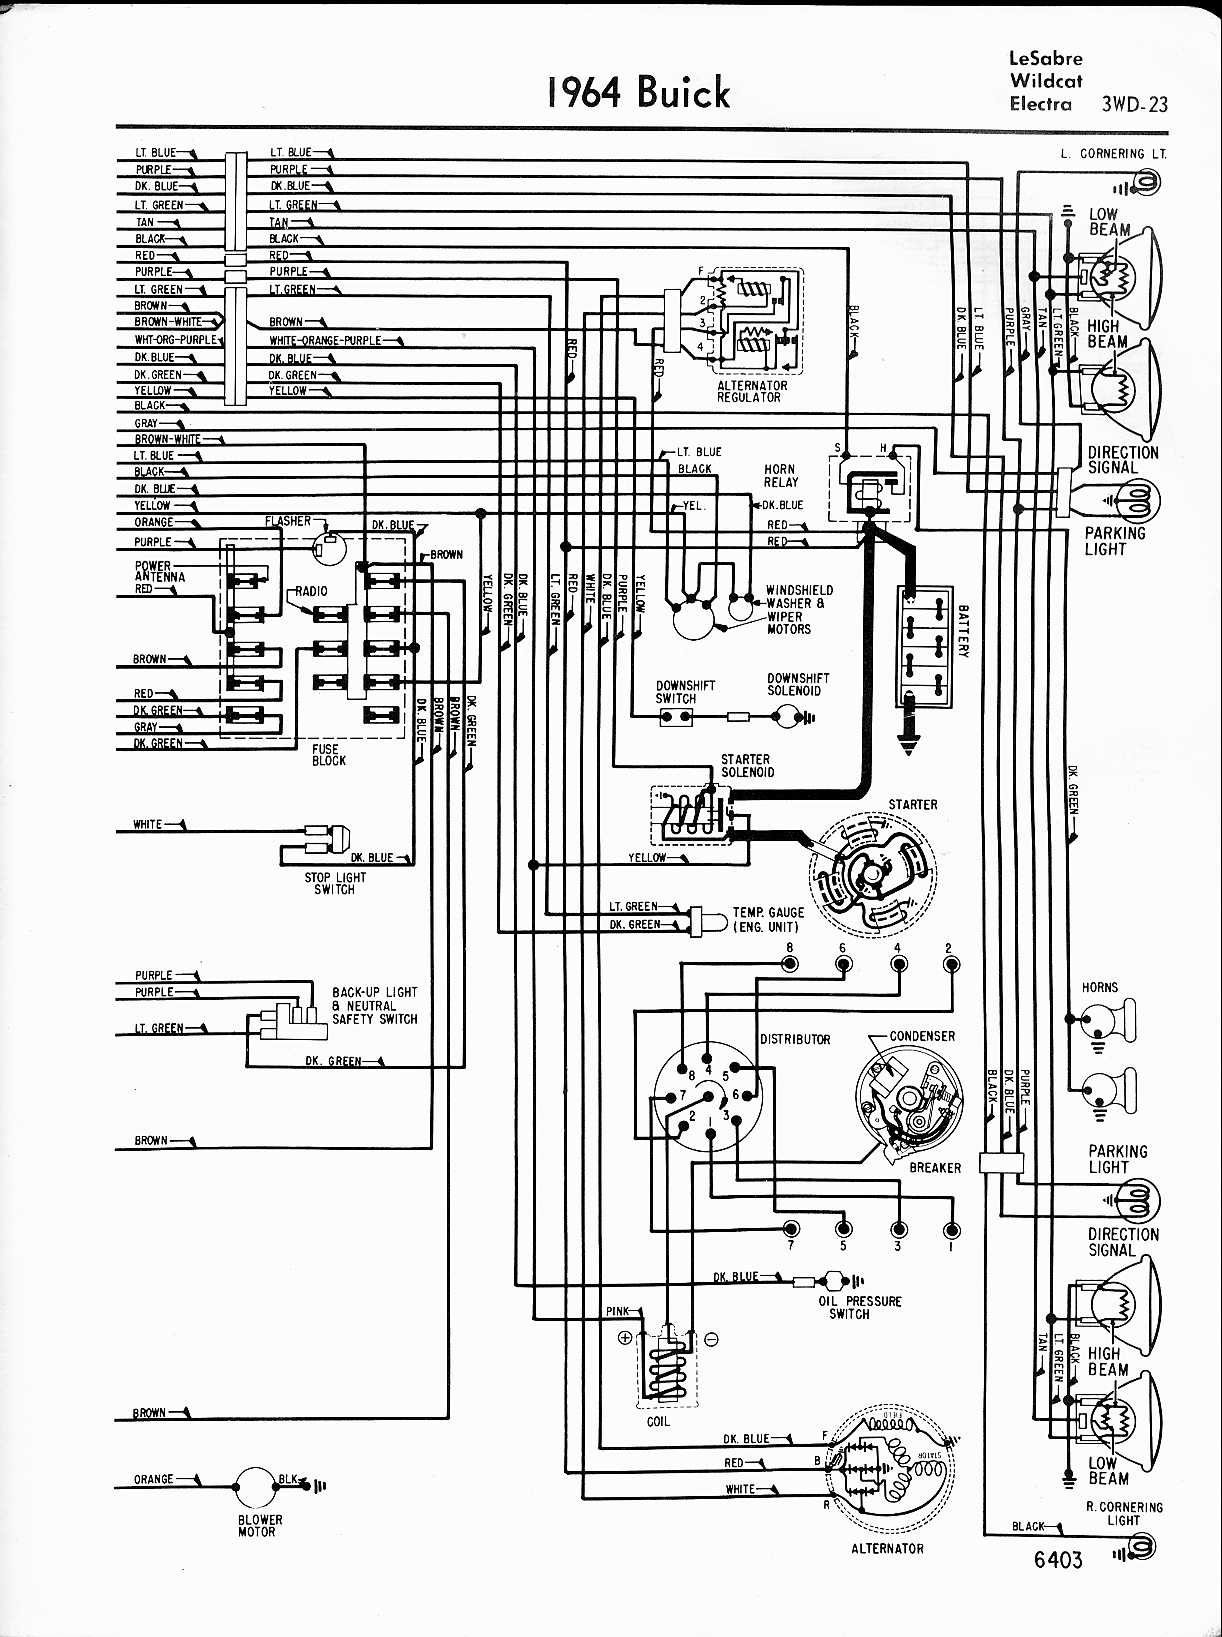 91 jeep cherokee neutral switch wiring diagram wiring diagram Jeep Wiring Harness Diagram 1998 jeep cherokee neutral safety switch wiring diagram 9 894 jeep cherokee neutral safety switch wiring